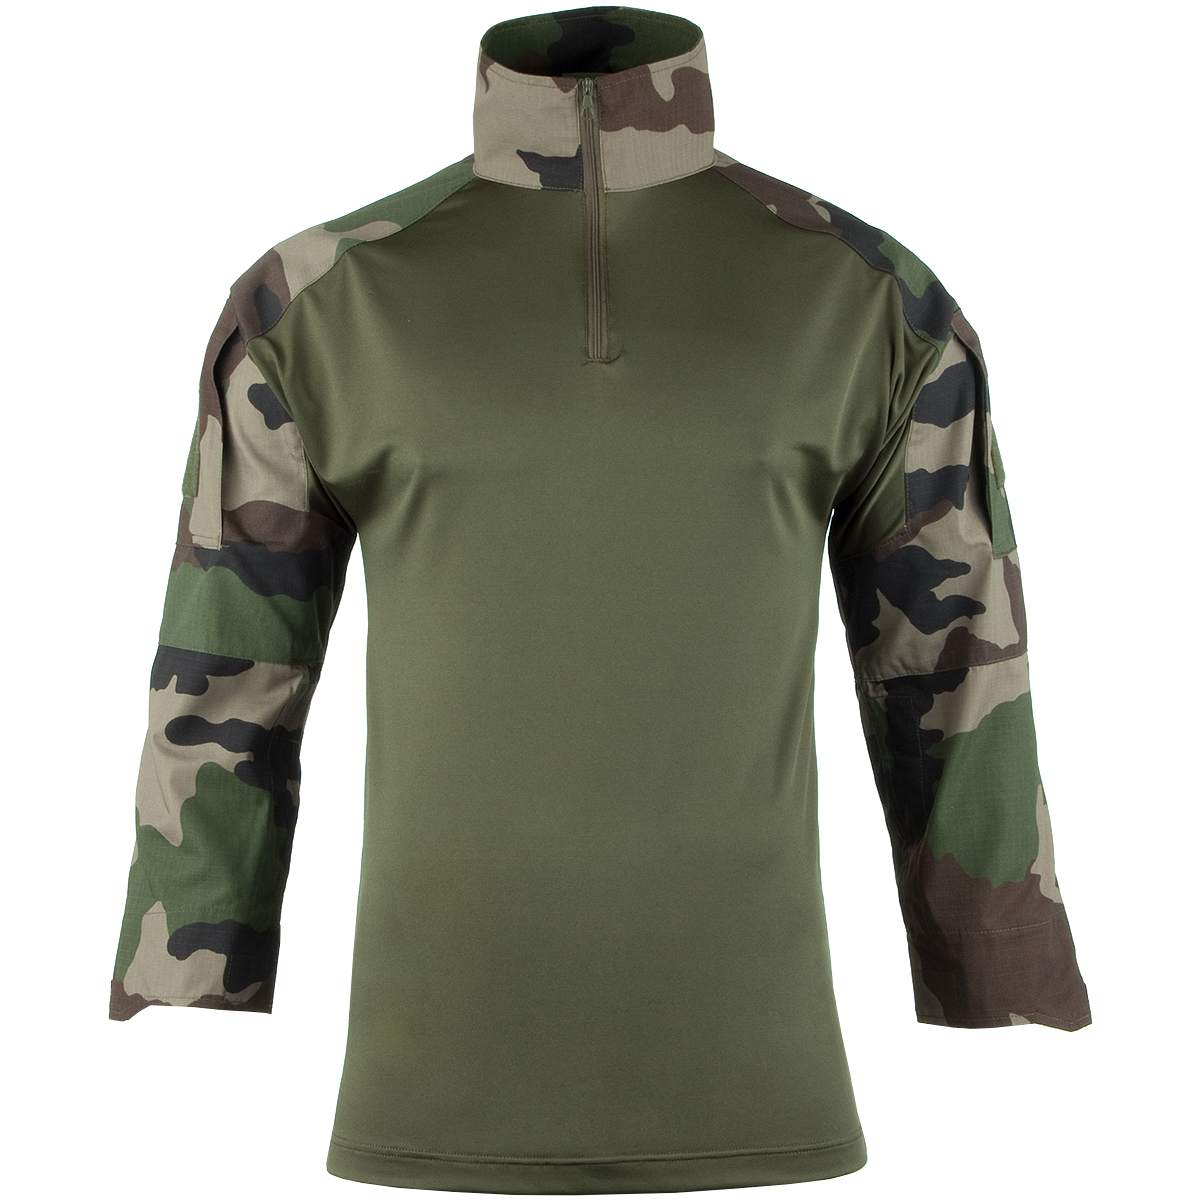 Guerrero-Combate-Militar-Hombres-Camisa-Codo-Cojines-Airsoft-Paintball-Frances-C